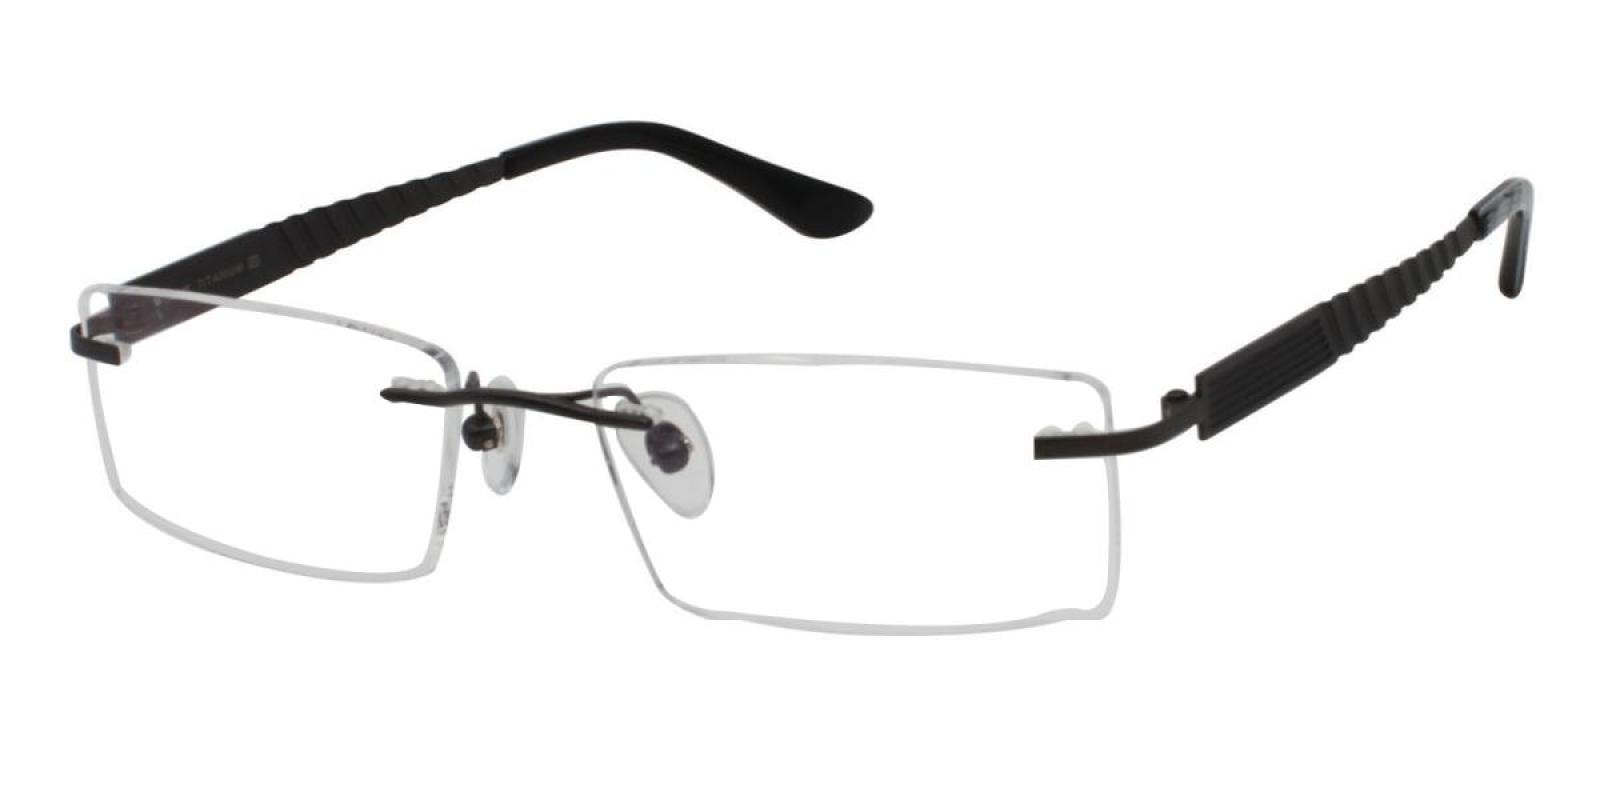 Blaymond-Gun-Varieties-Titanium-Eyeglasses-additional1